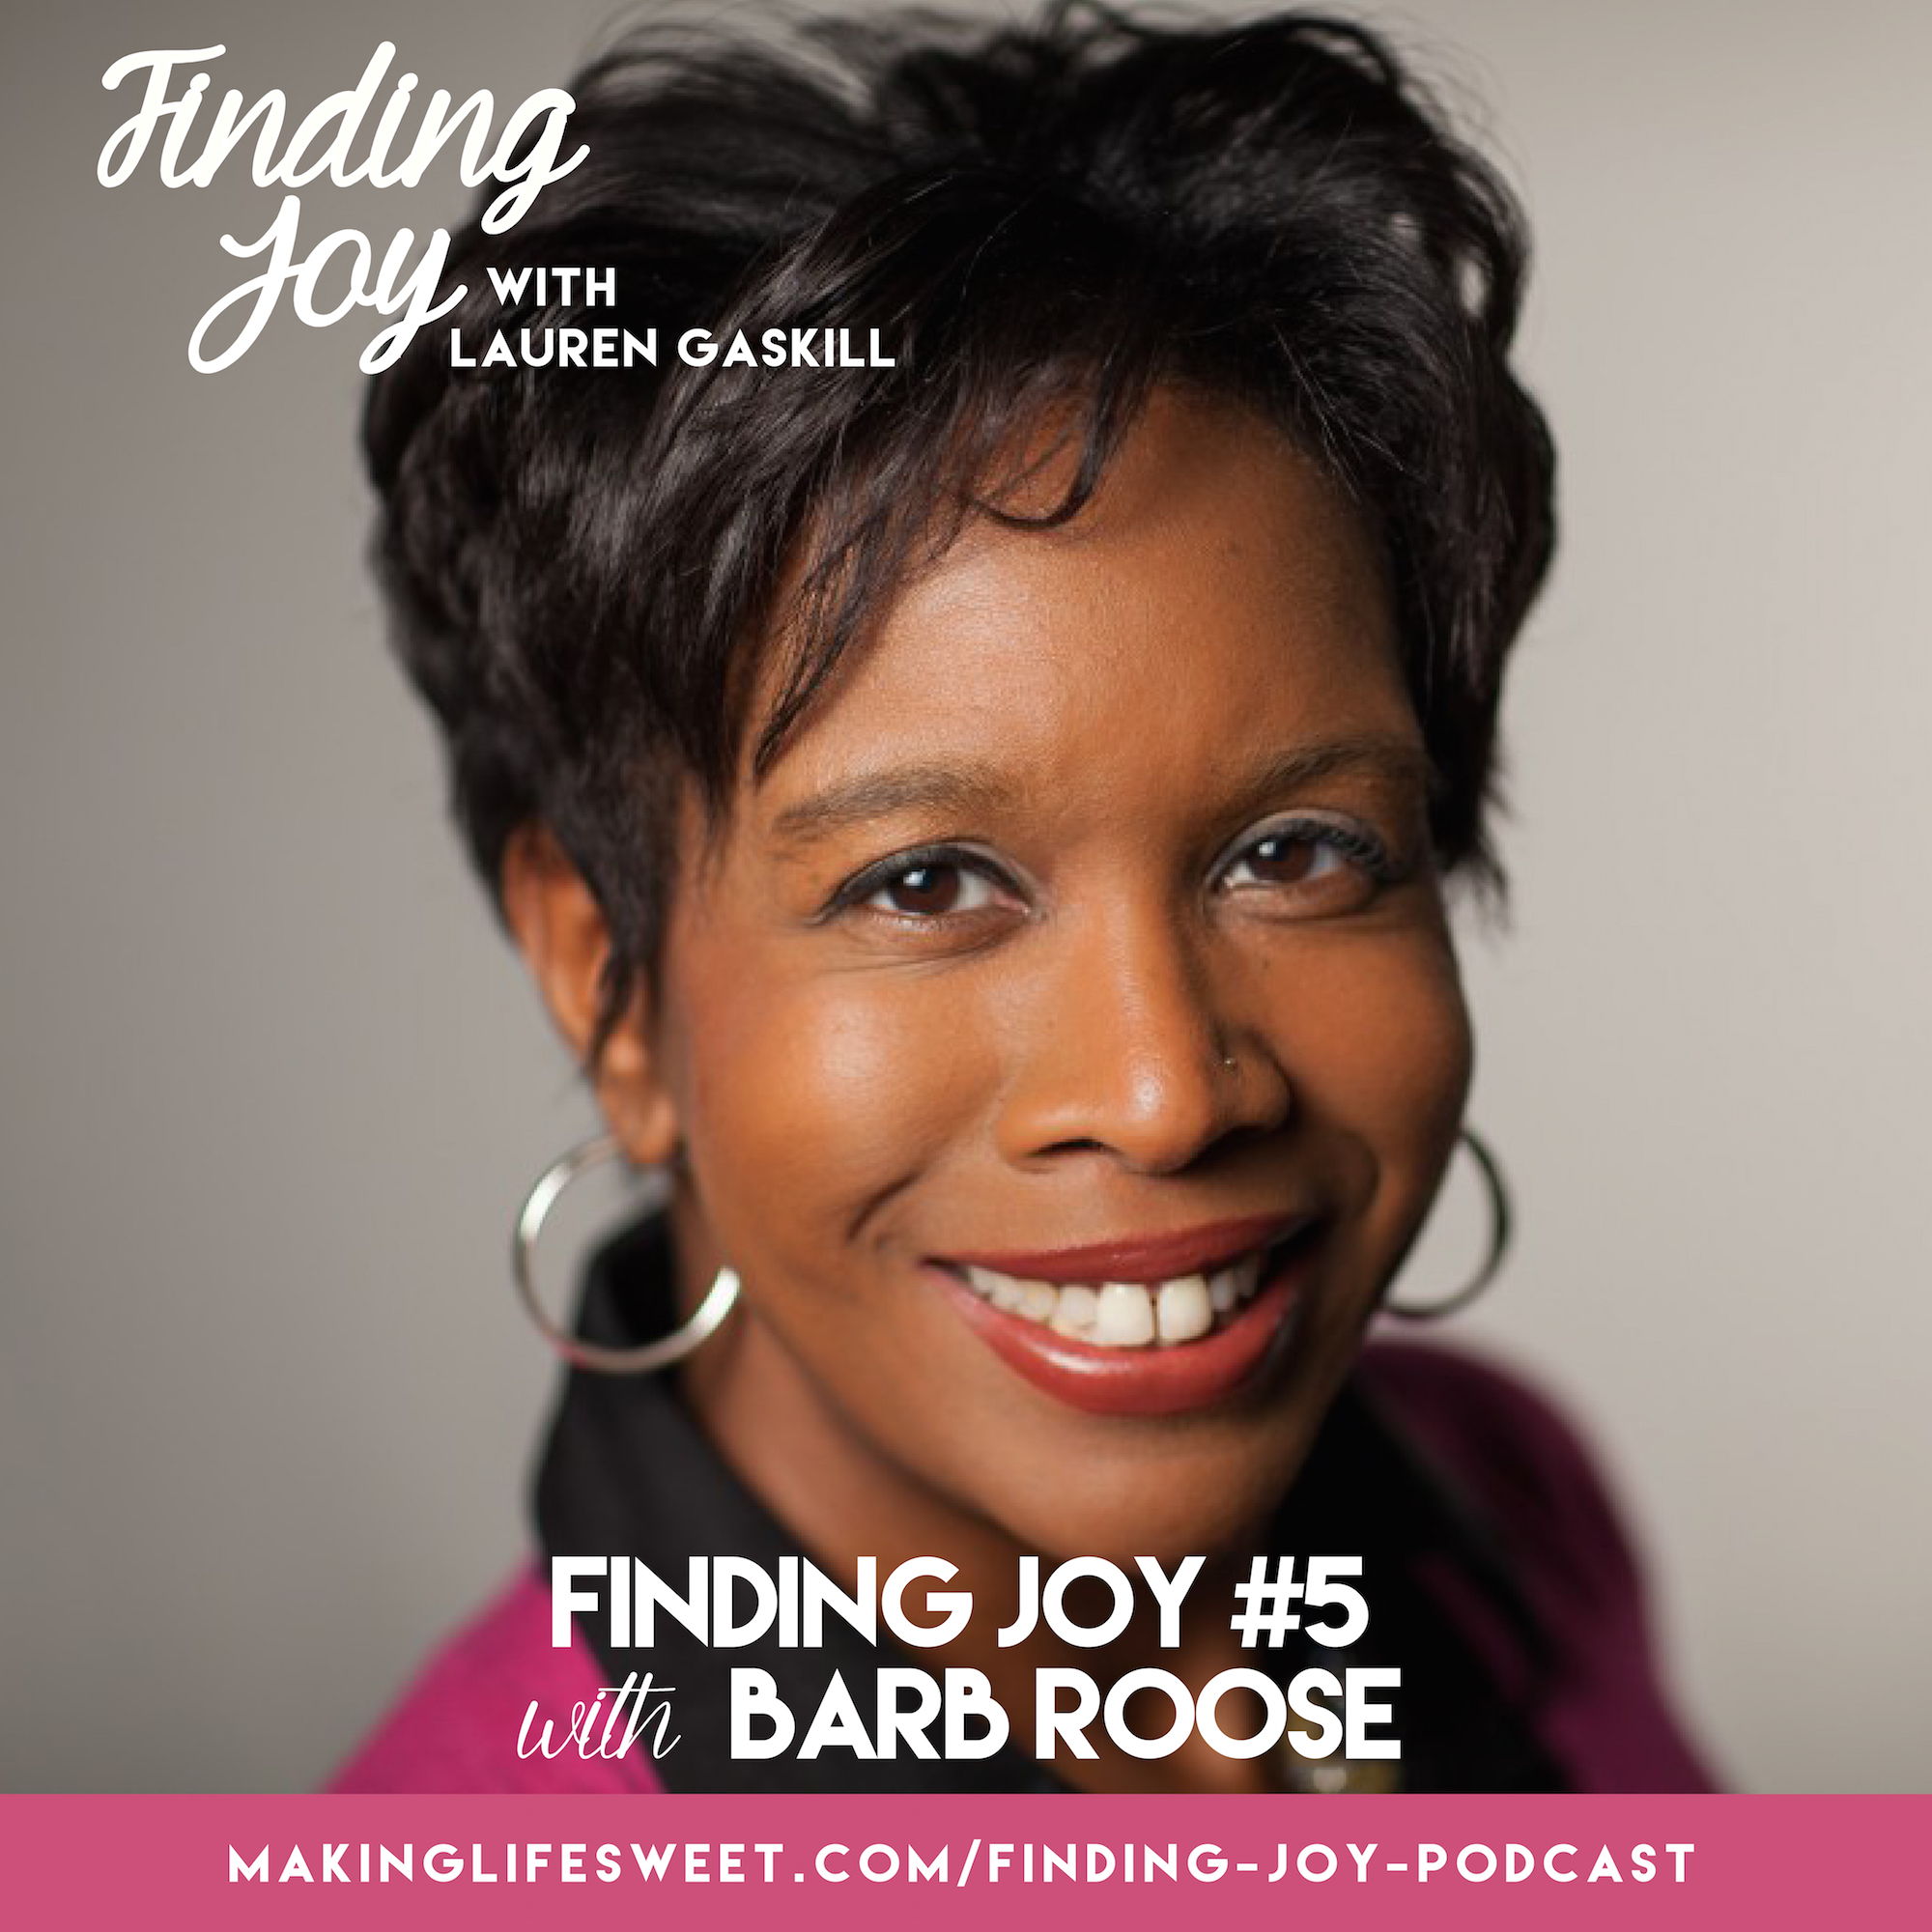 barb roose finding joy podcast with lauren gaskill 2